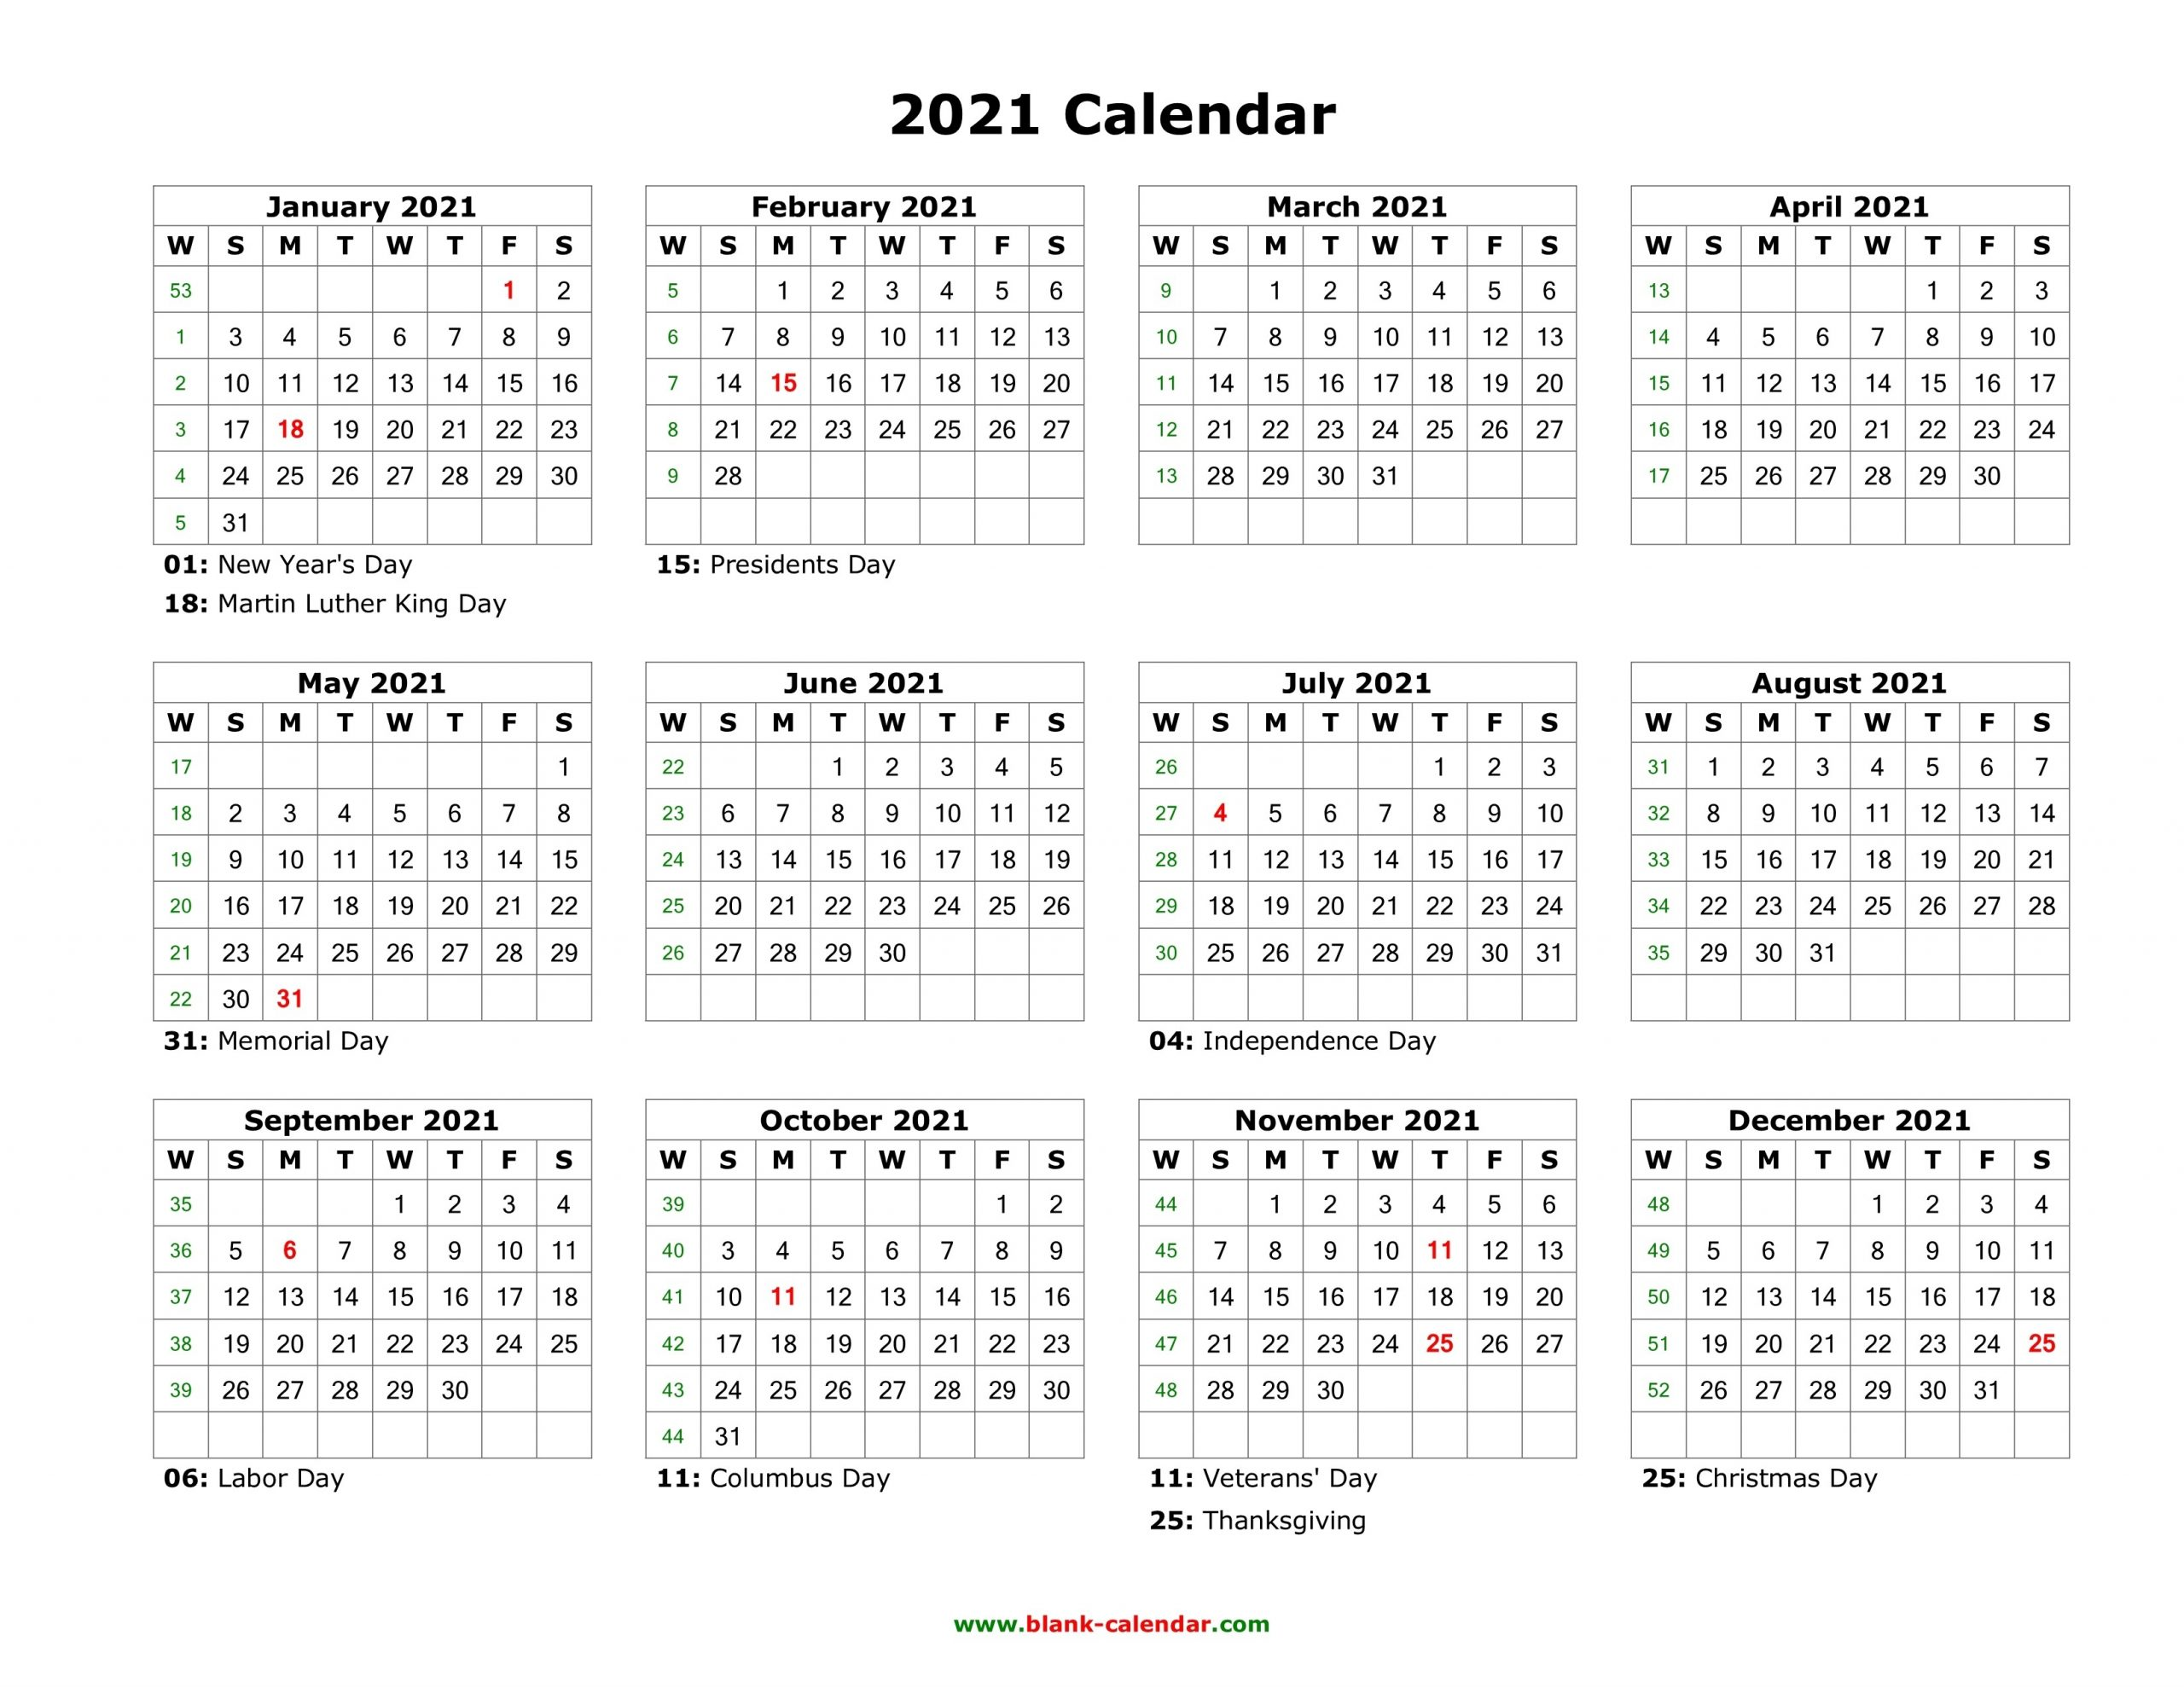 Blank Calendar 2021 | Free Download Calendar Templates  Free Printable Editable Calendars 2021